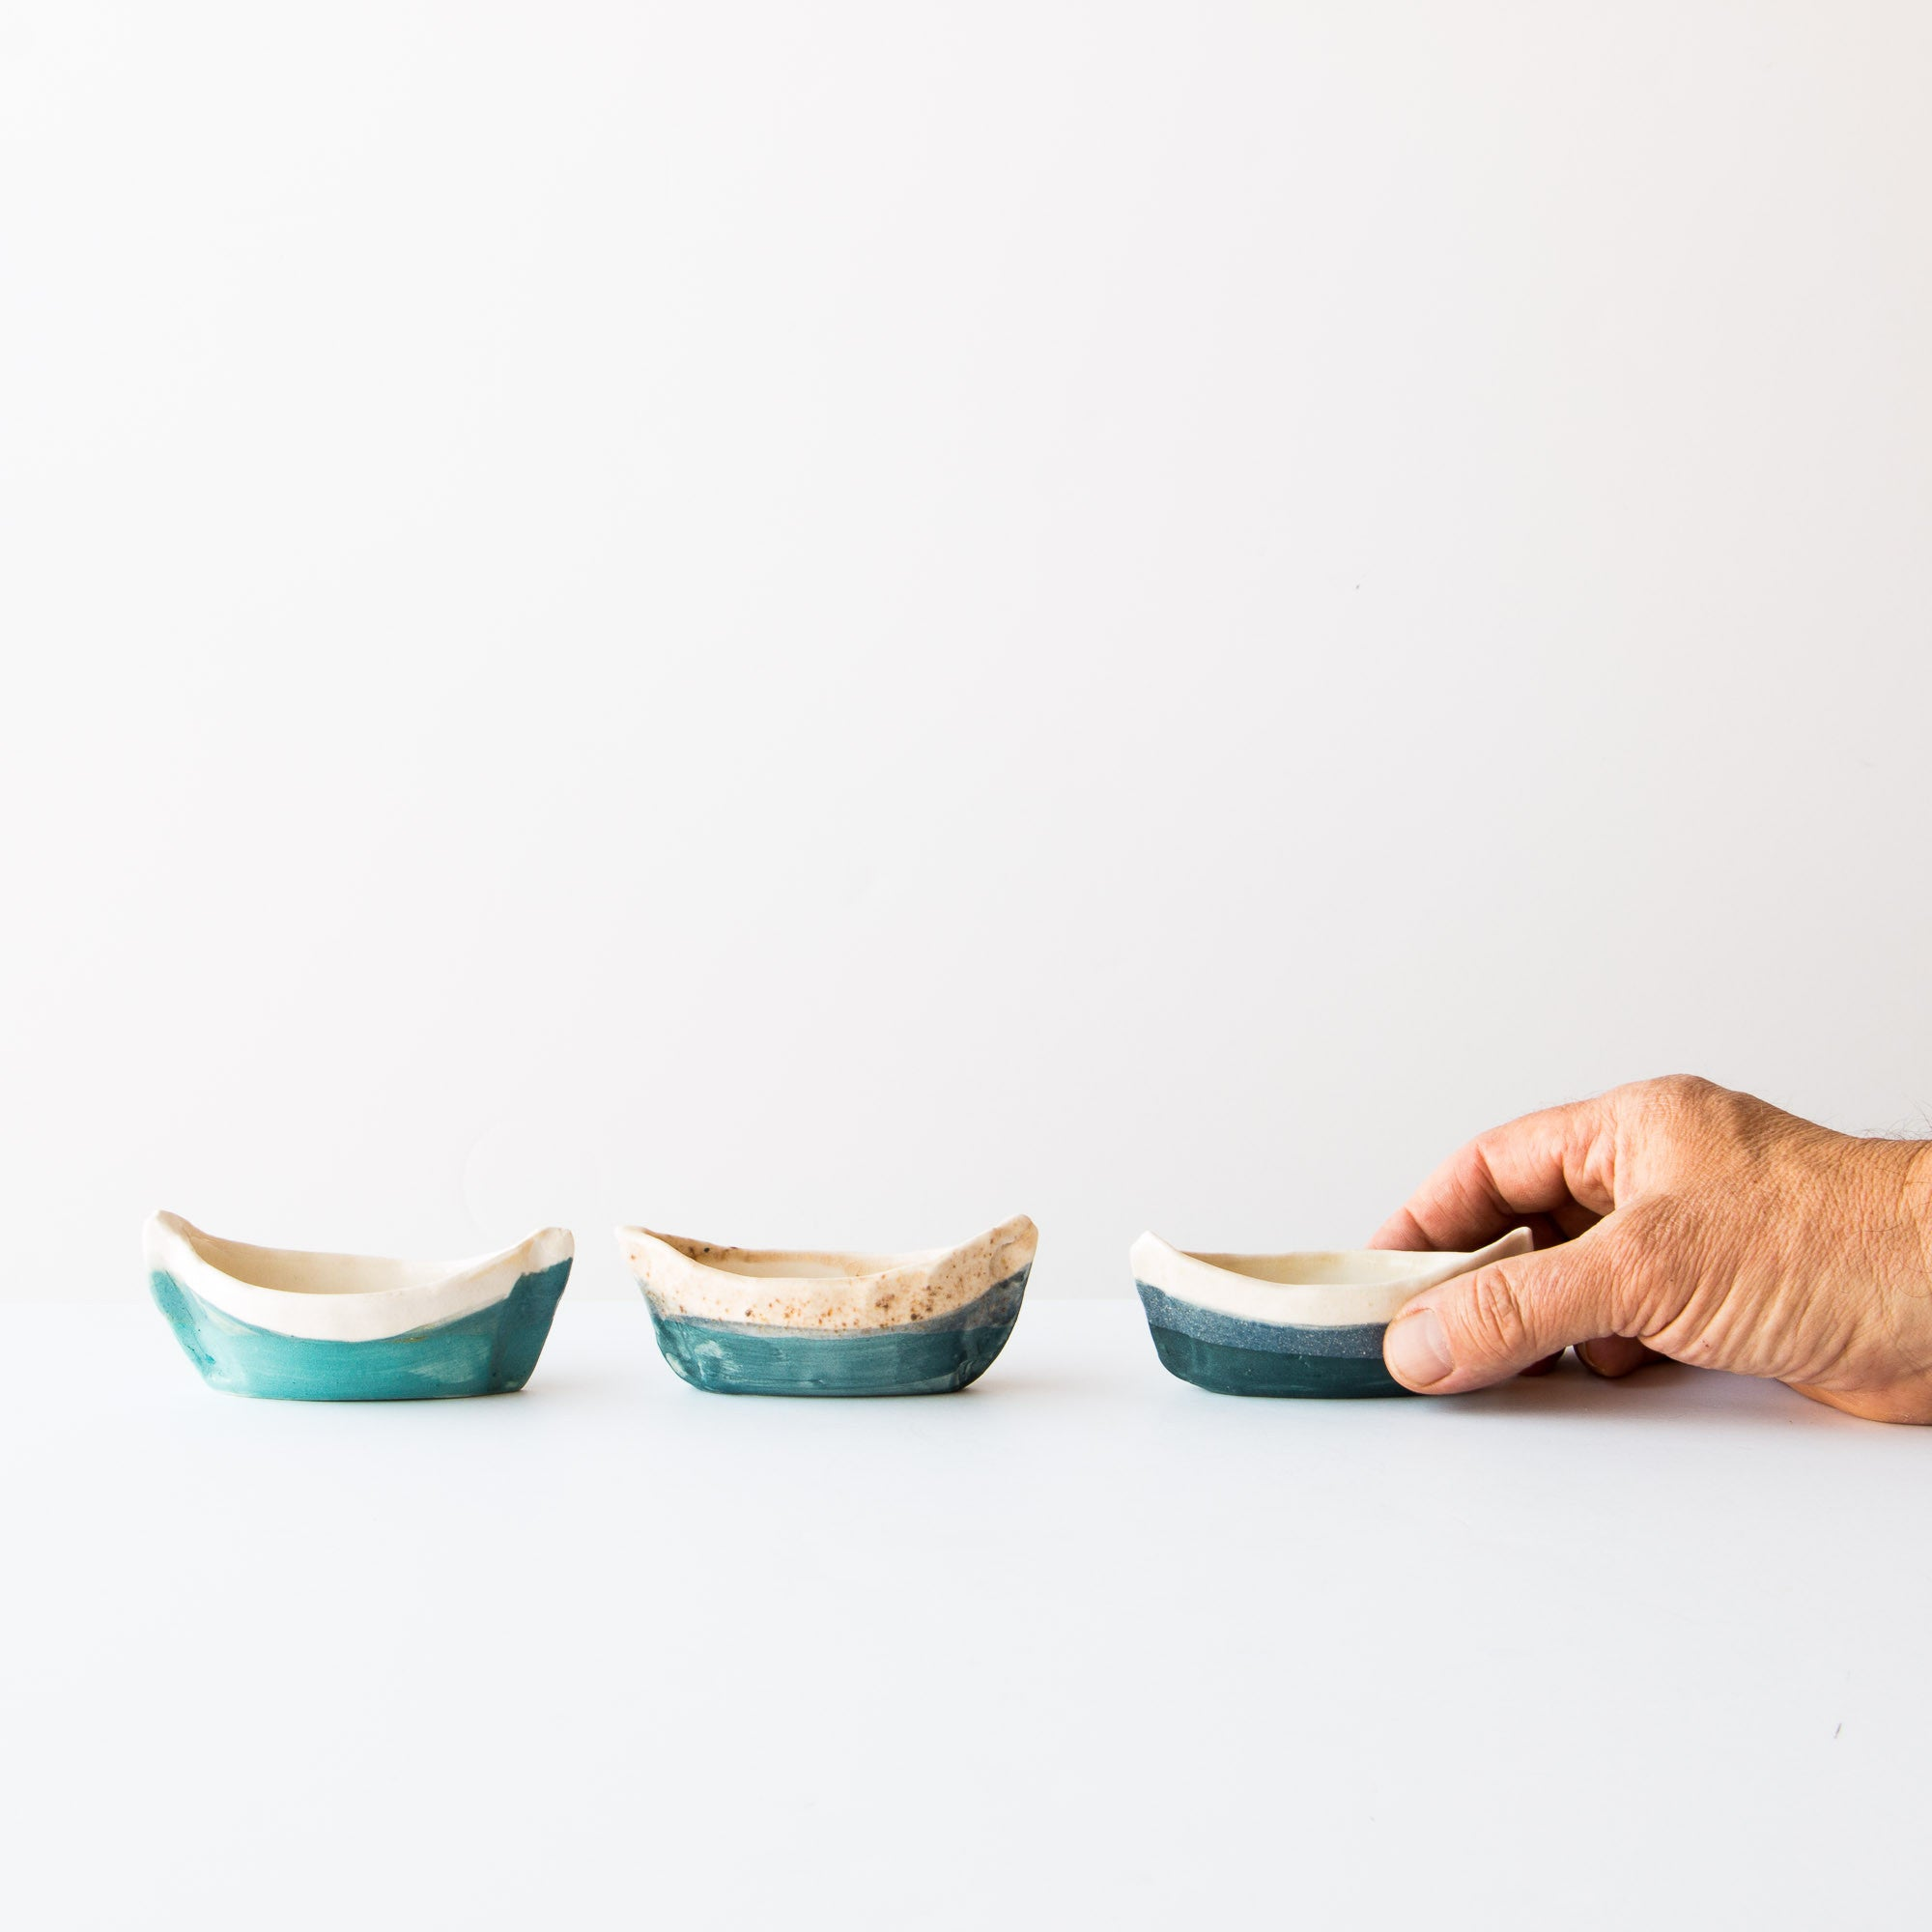 Small Hand Shaped White & Blue Ceramics Boats - Chic & Basta